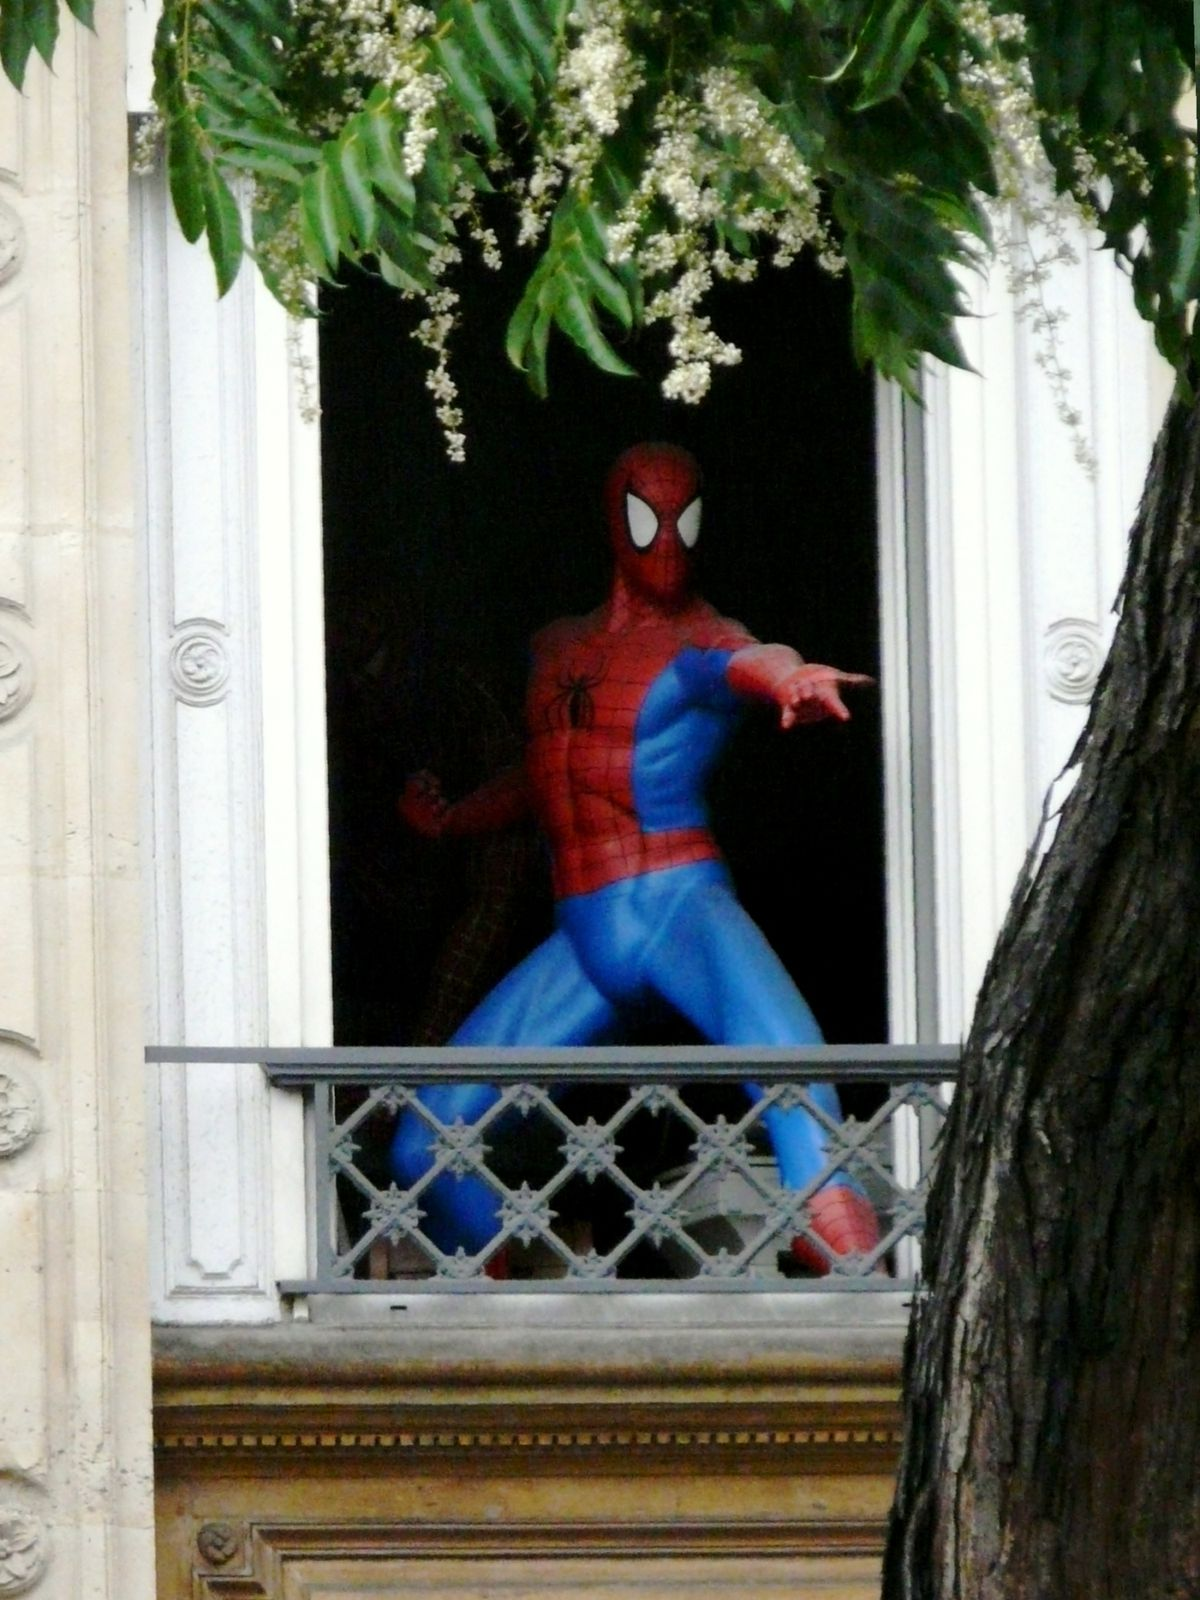 Spiderman-Av-Gobelins.jpg